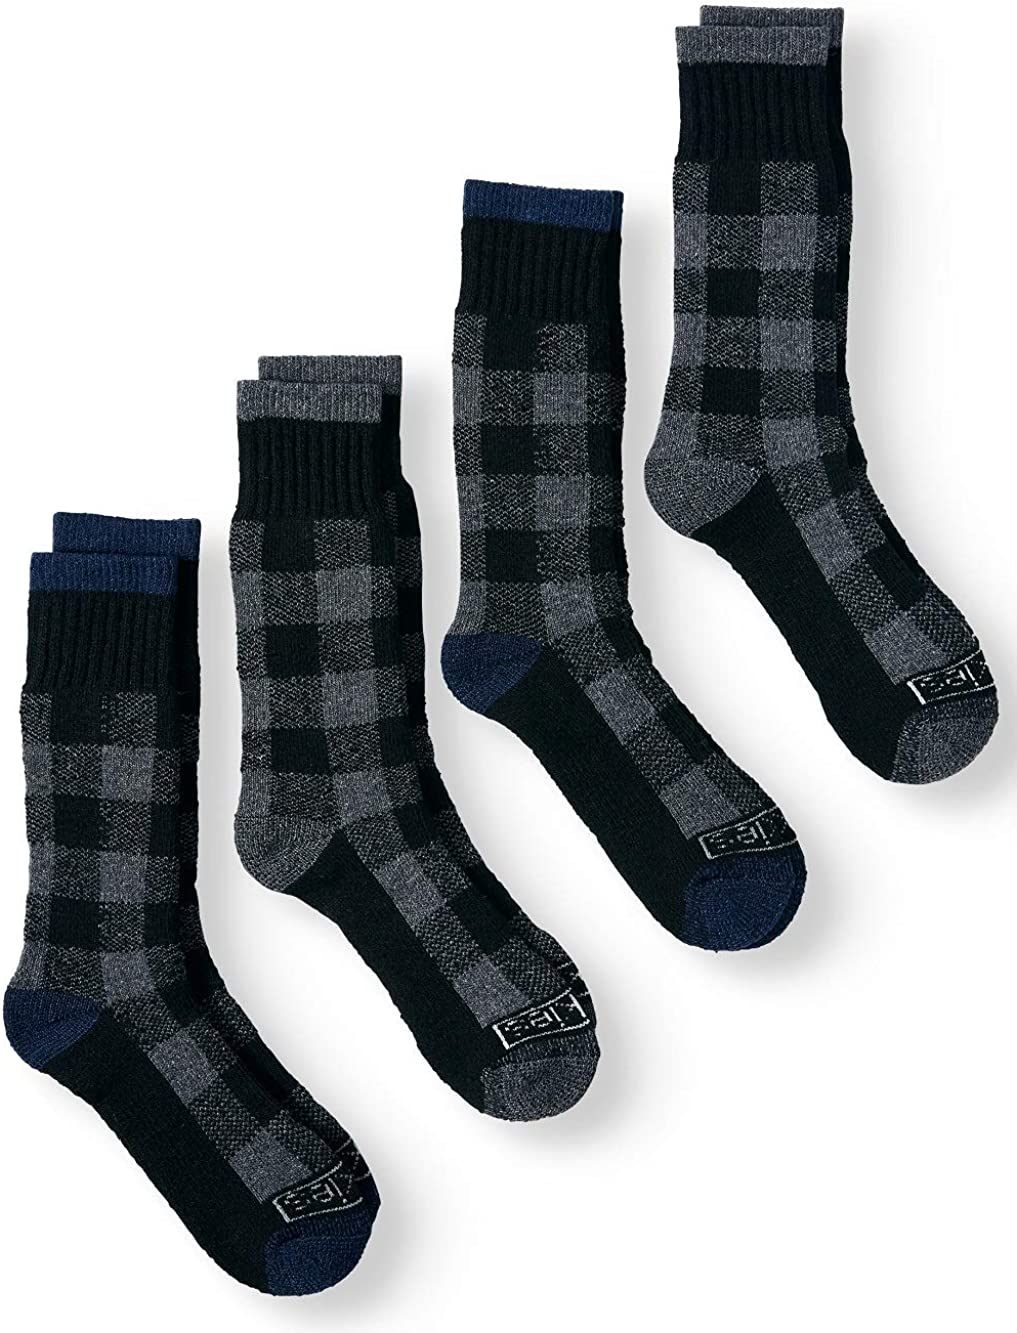 Dickies Premium Steel Toe Thermal Buffalo Plaid Wool Crew Socks (2-Pack) 10-13 (Charcoal Gray Plaid)